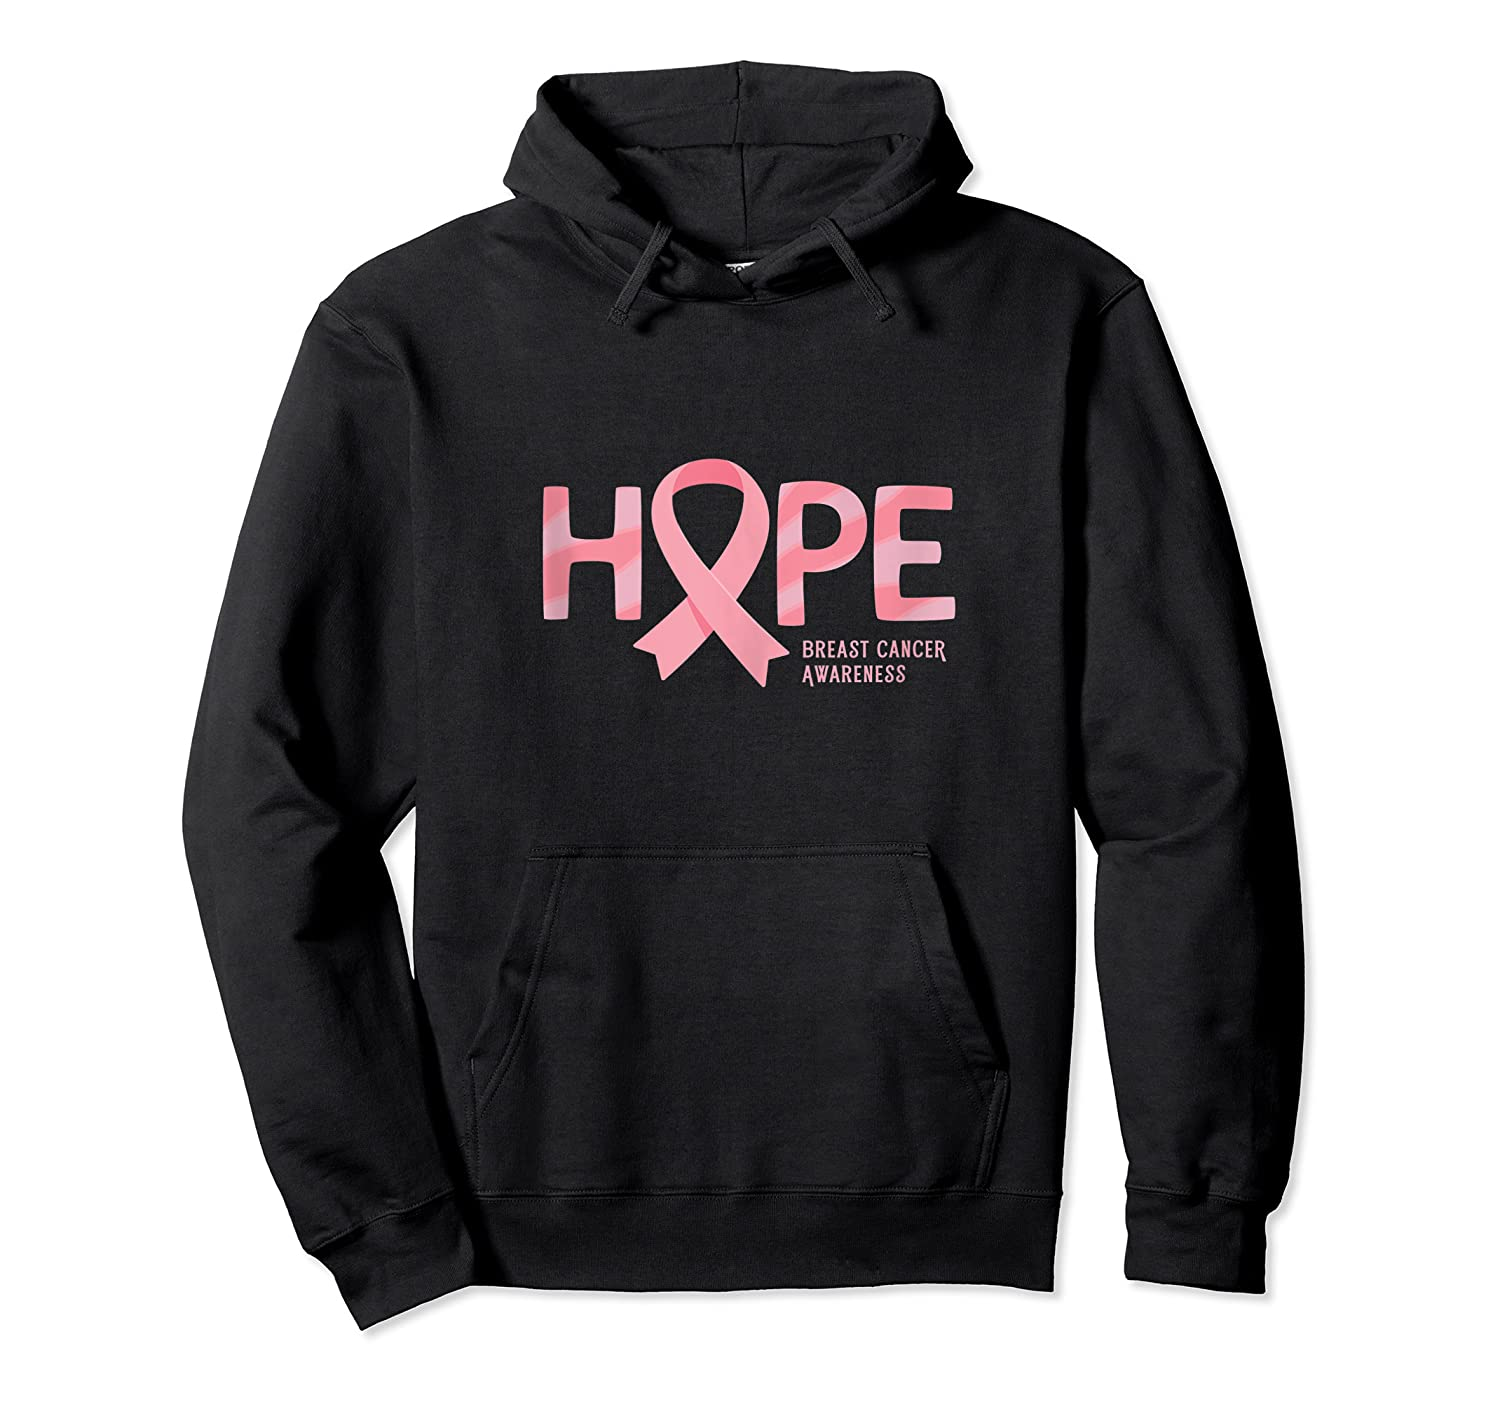 Have Hope Breast Cancer Awareness Month Support Team Tank Top Shirts Unisex Pullover Hoodie